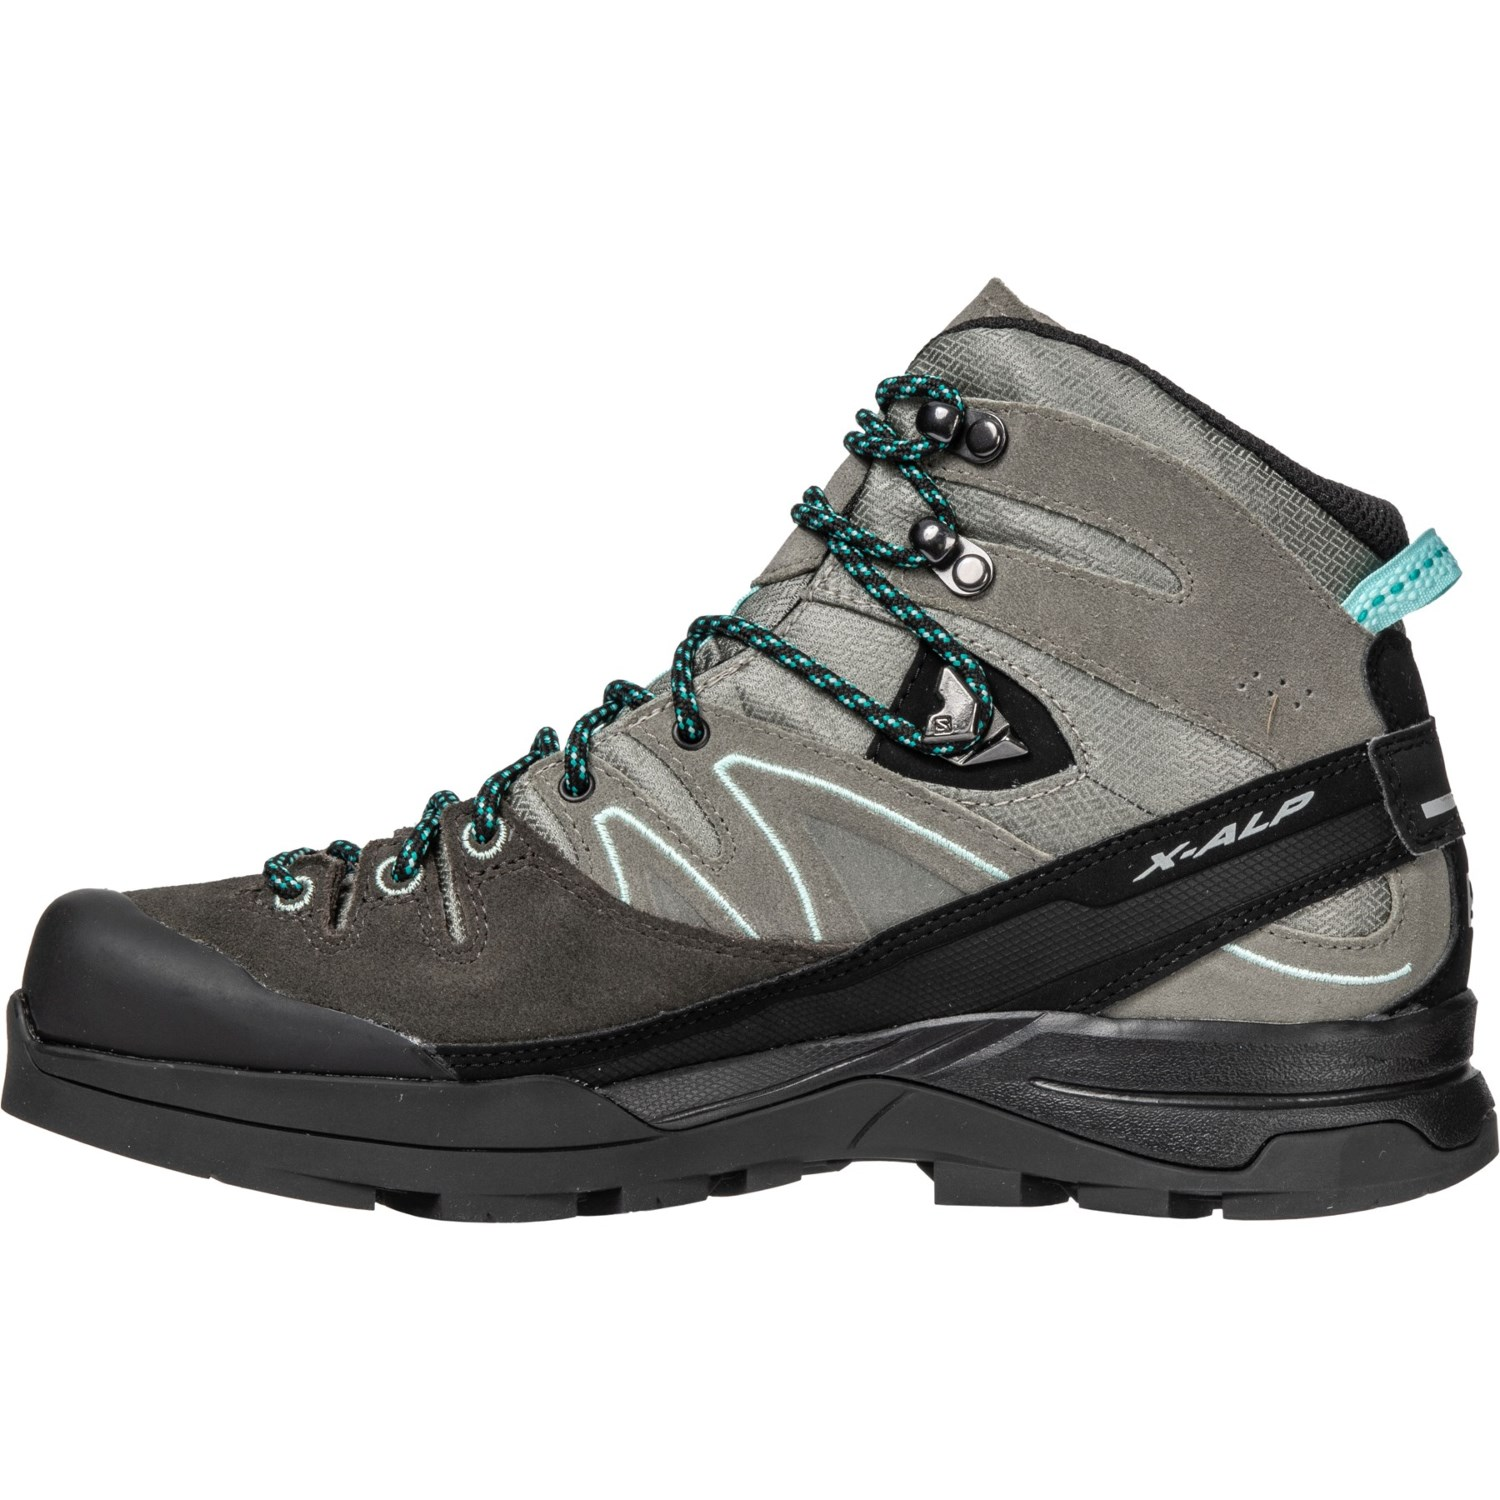 58d95a49bf5 Salomon X Alp Mid Gore-Tex® Backpacking Boots - Waterproof (For Women)